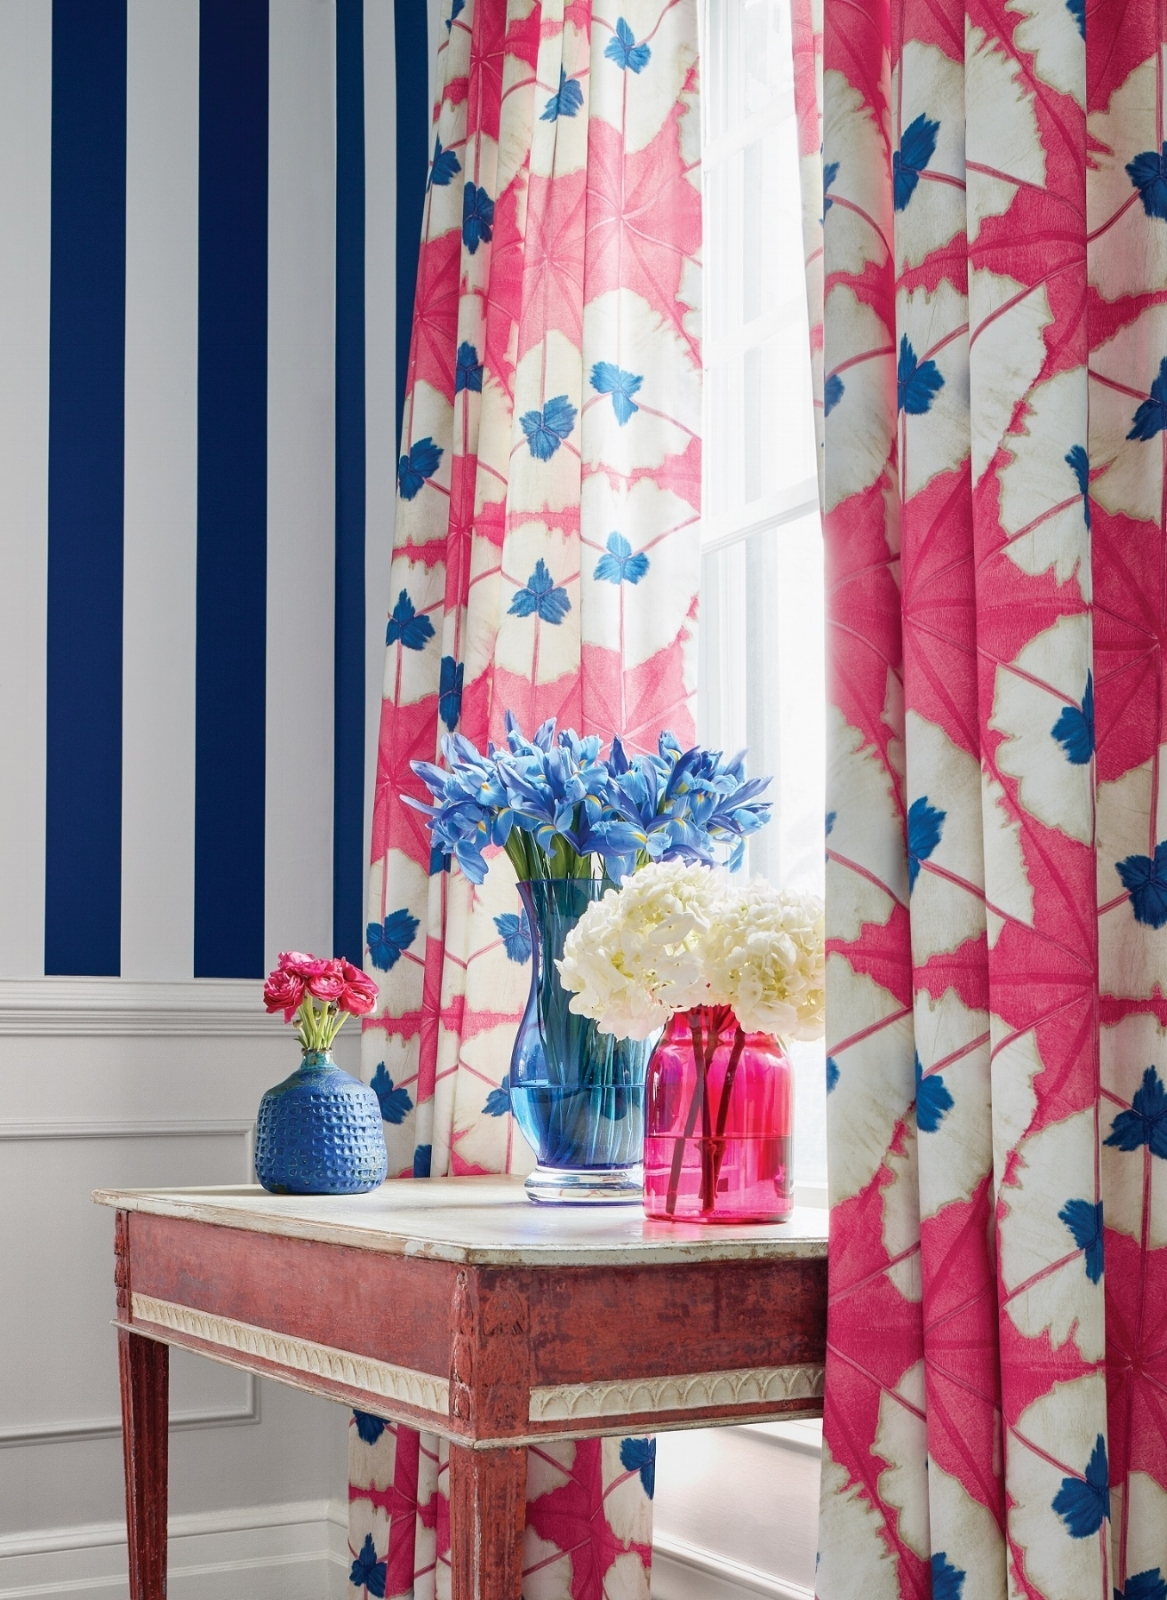 Color changes everything with Thibaut Design's  Summer Stripe  wallpaper in navy paired with  Sunburst  printed fabric in pink and blue.  Photo: Courtesy of Thibaut Design.